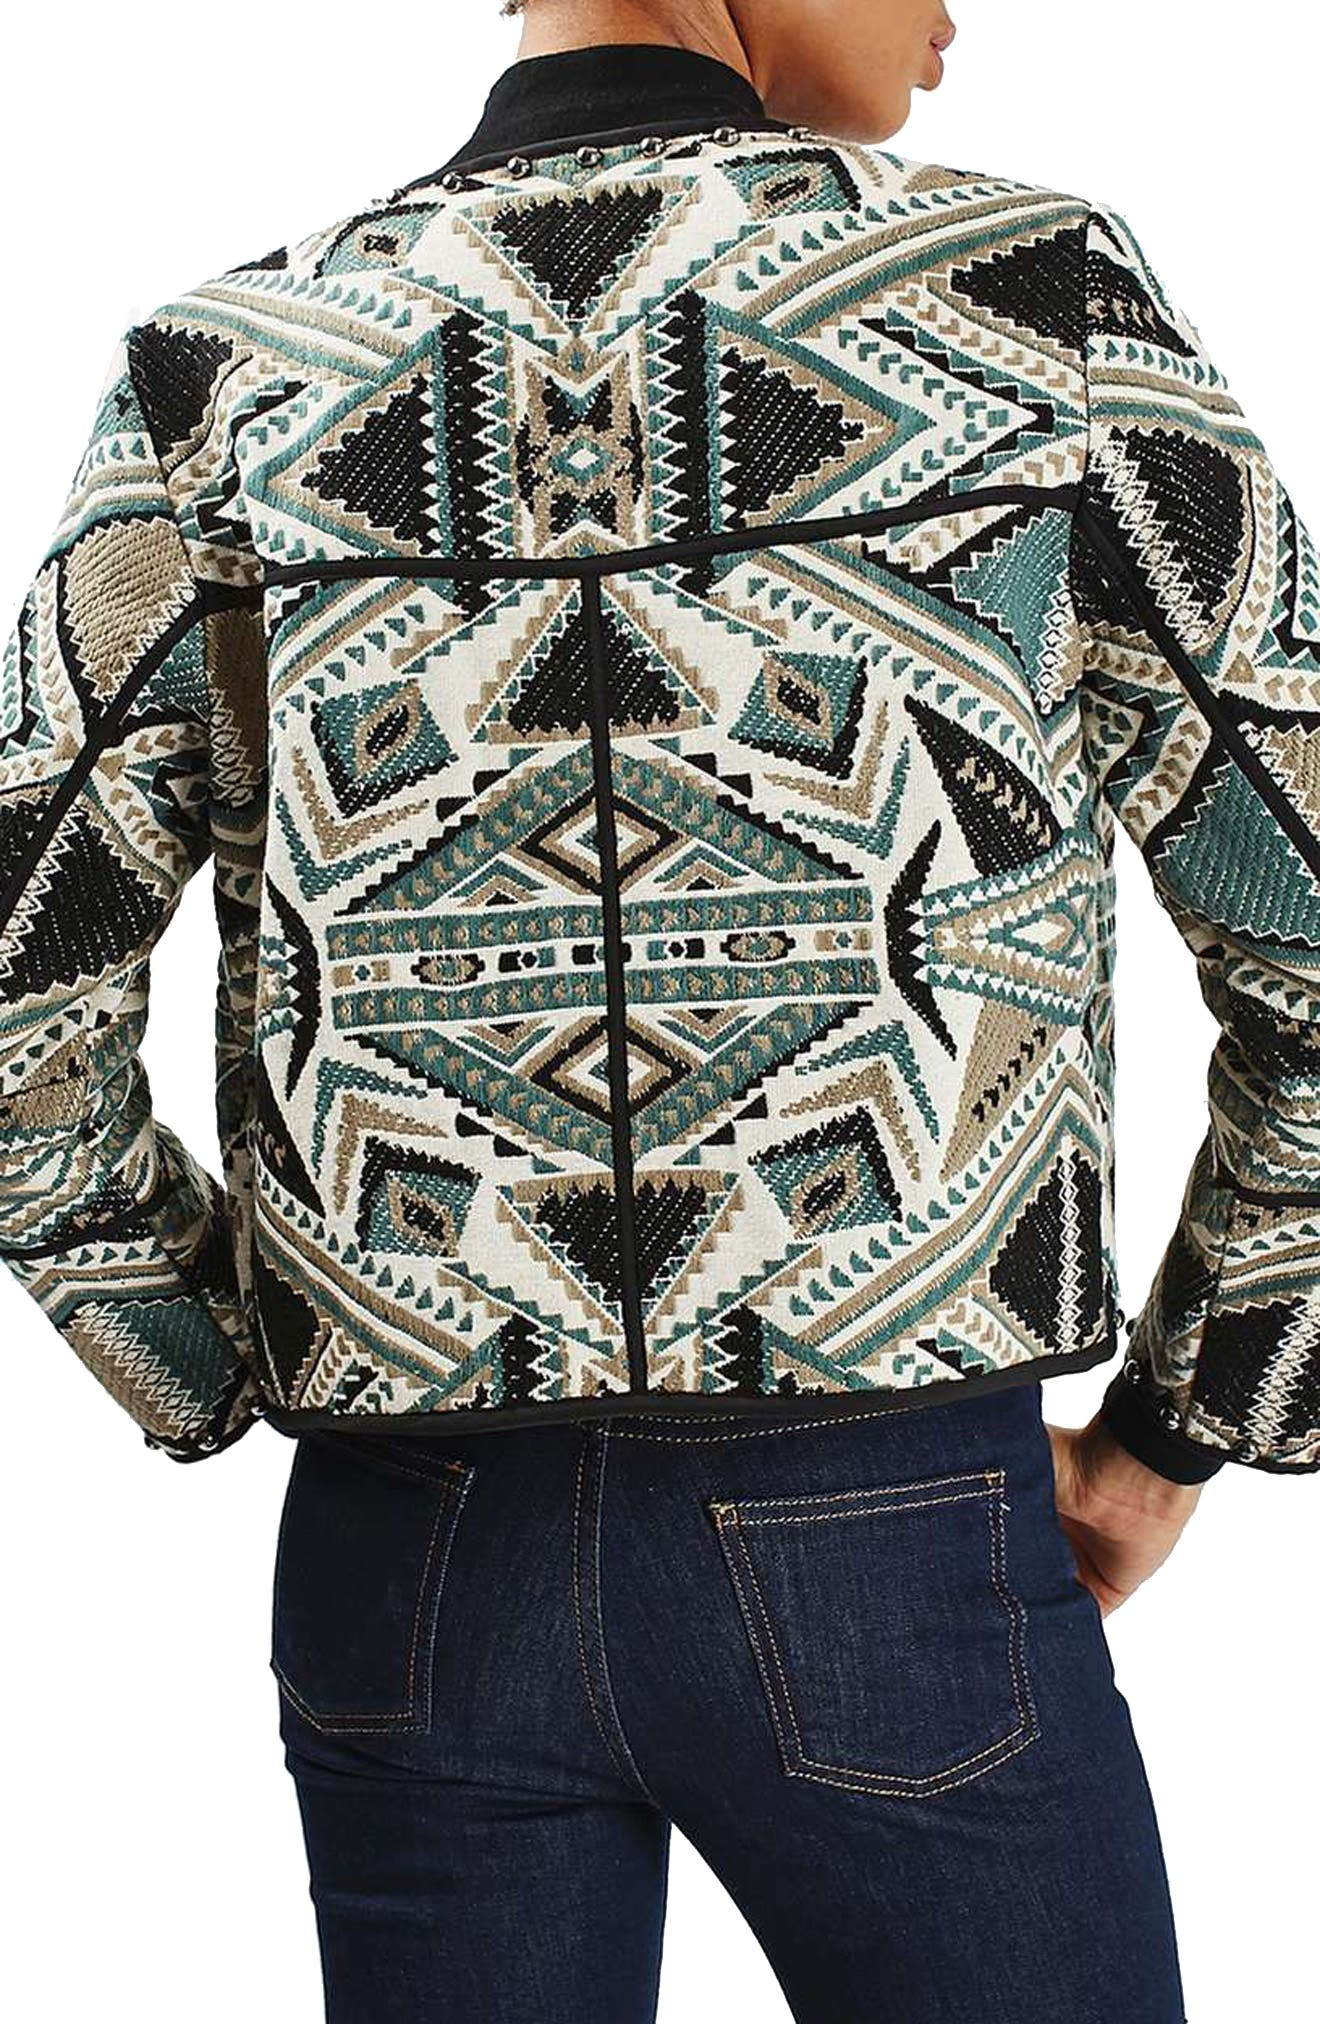 Studded Embroidered Jacket,                             Alternate thumbnail 2, color,                             020